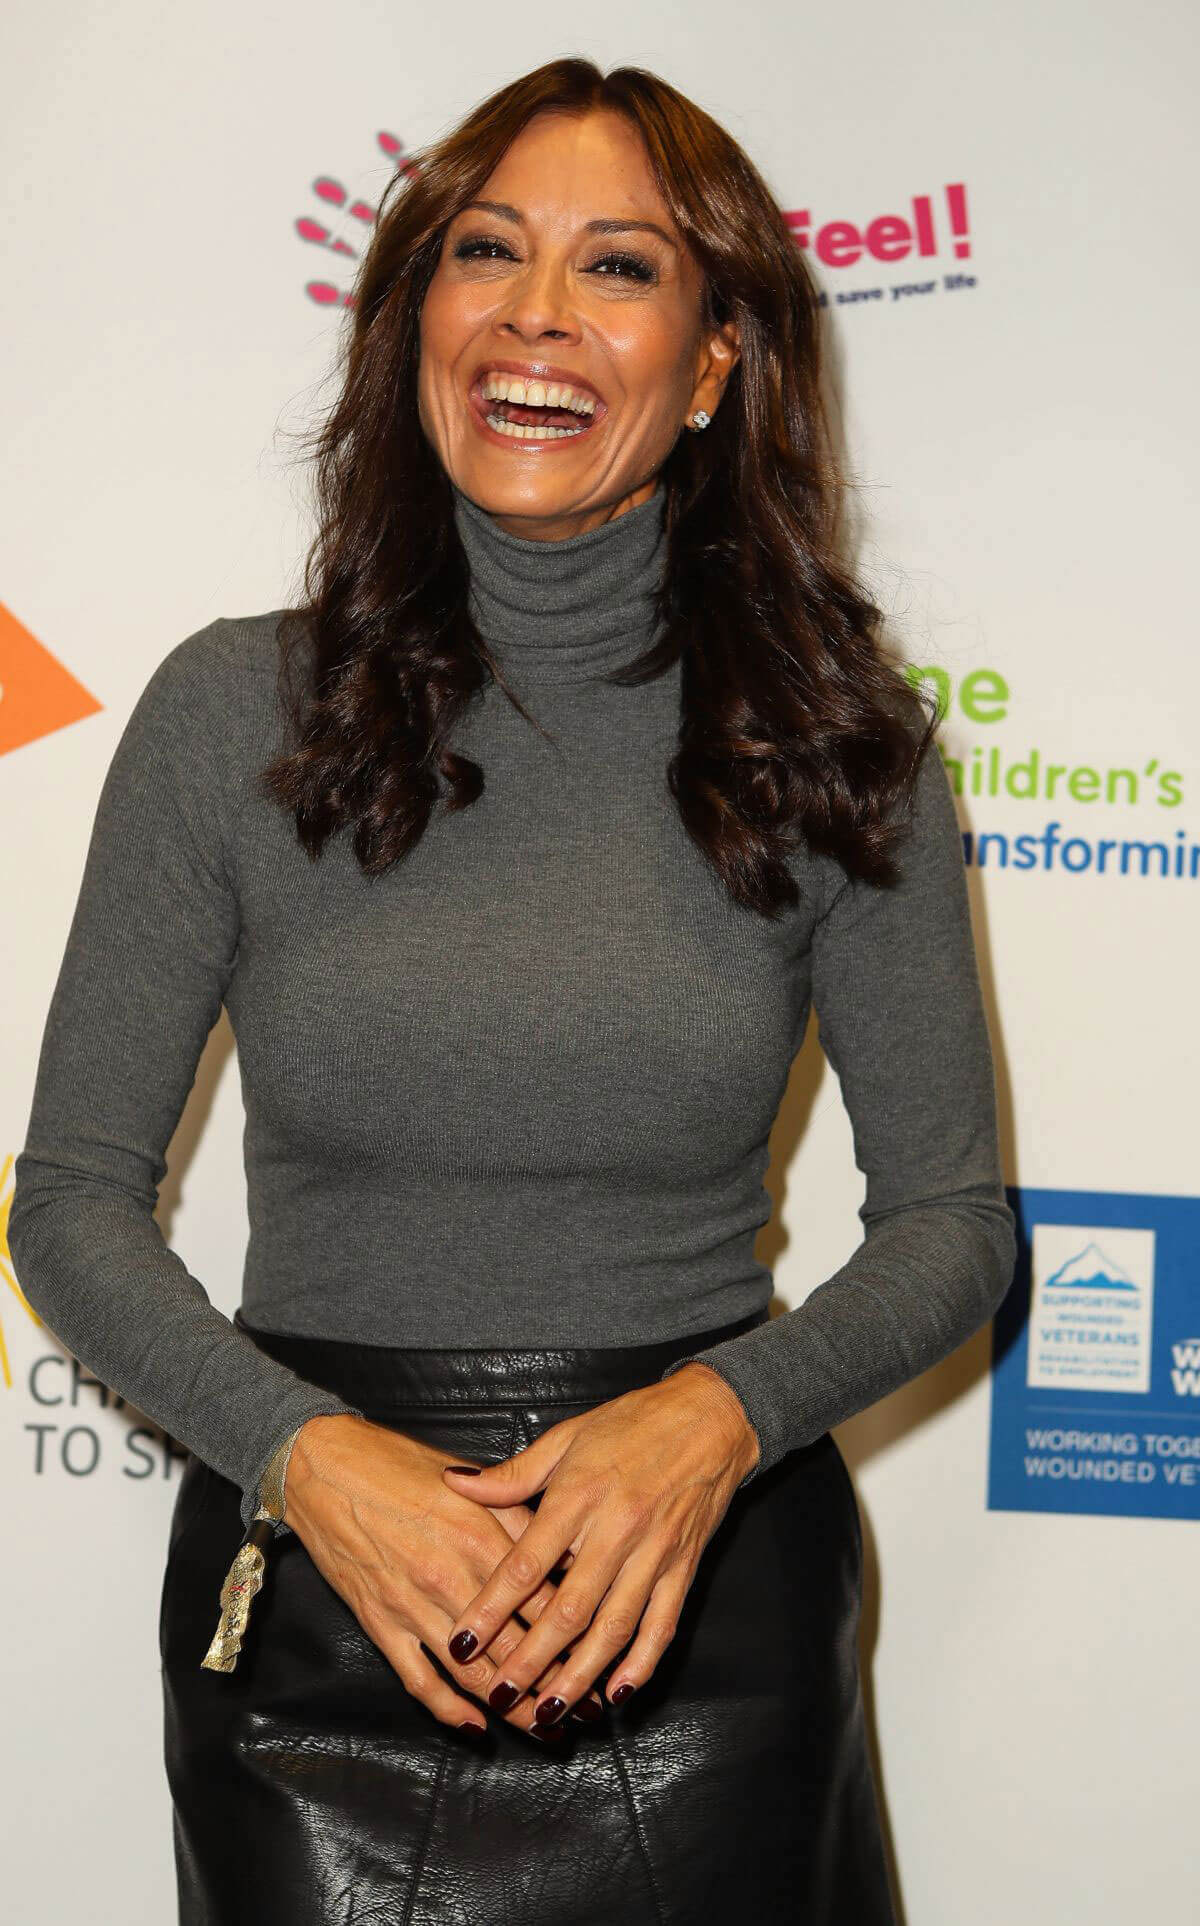 Melanie Sykes at BGC Charity Day in London